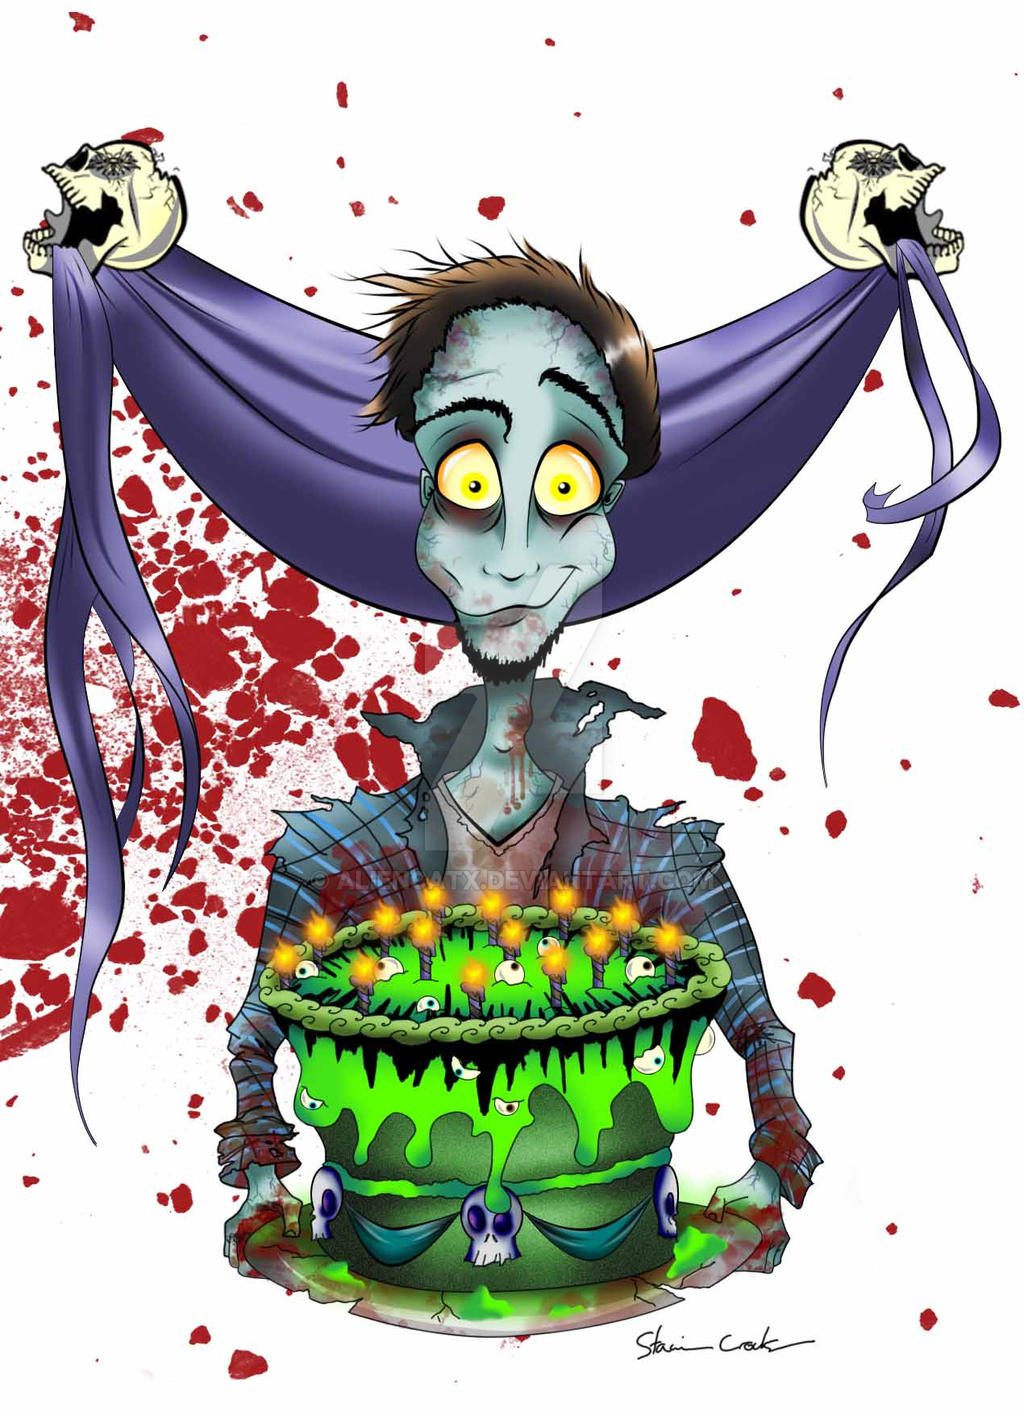 http://img03.deviantart.net/db18/i/2015/111/6/2/joey_the_zombie_birthday_card_by_aliencatx-d64twyz.jpg